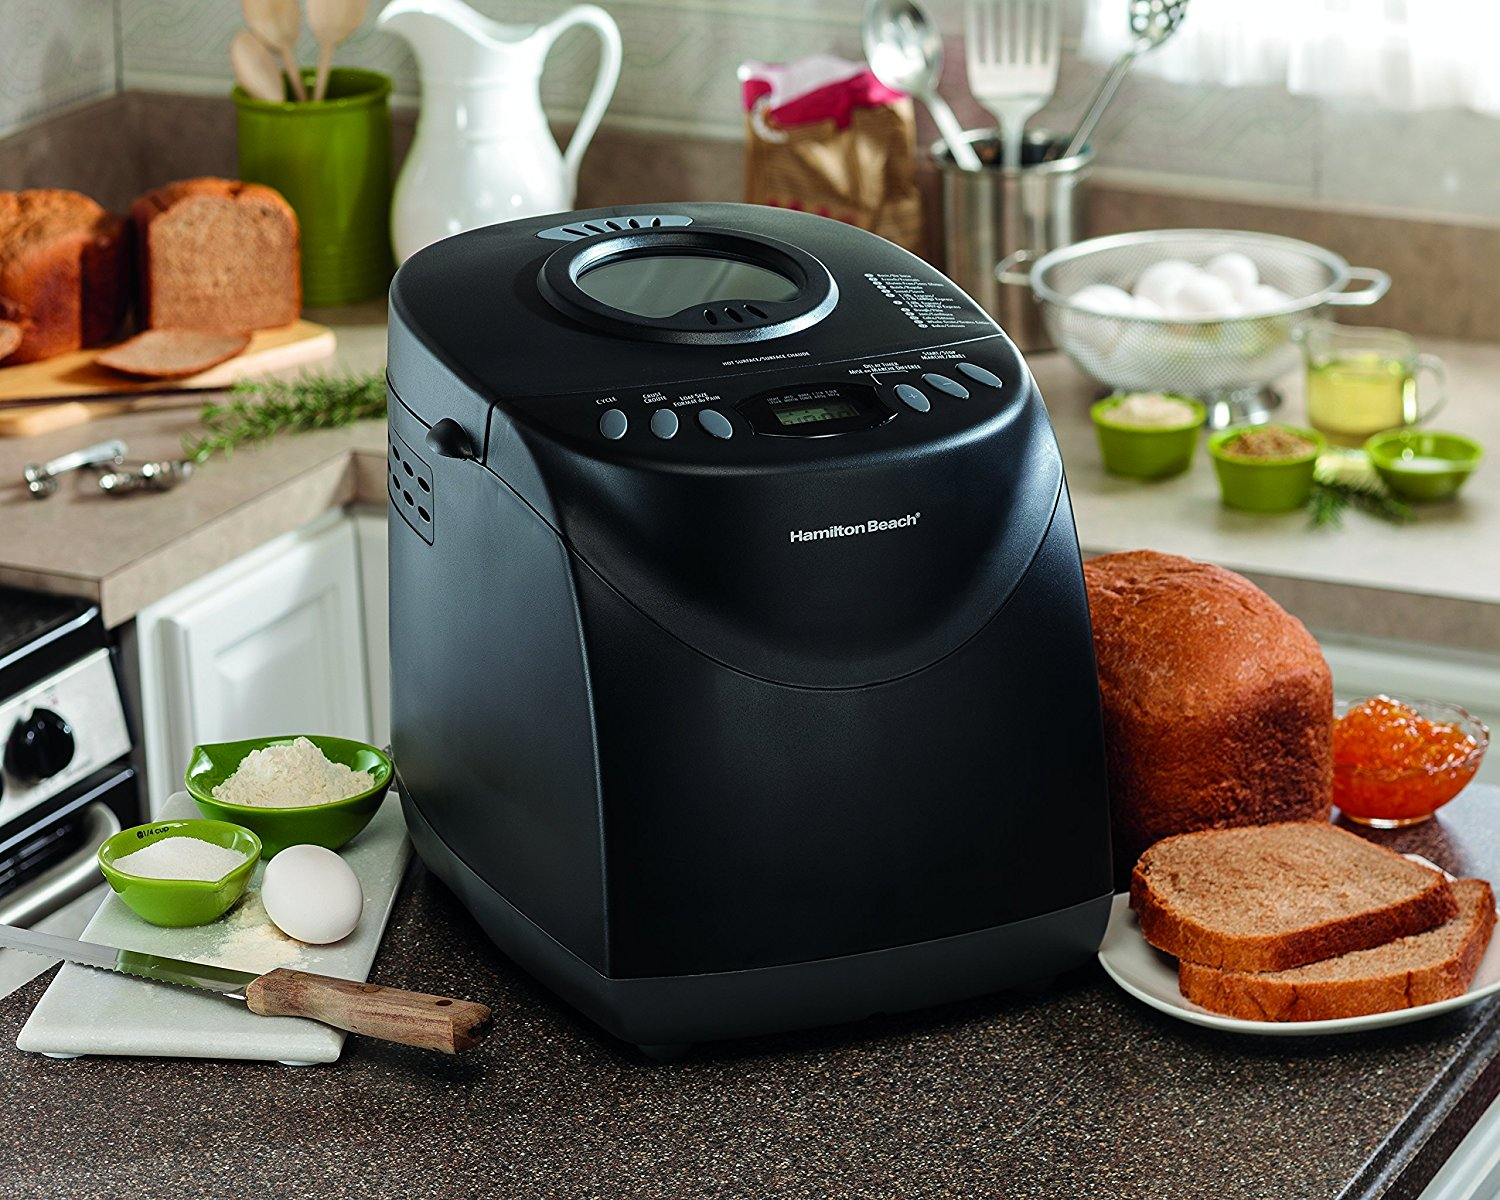 Bread Makers Food Processors Grill Juicers Mixers Toasters And Ovens Ideas Freestanding Dishwashers Integrated Slimline